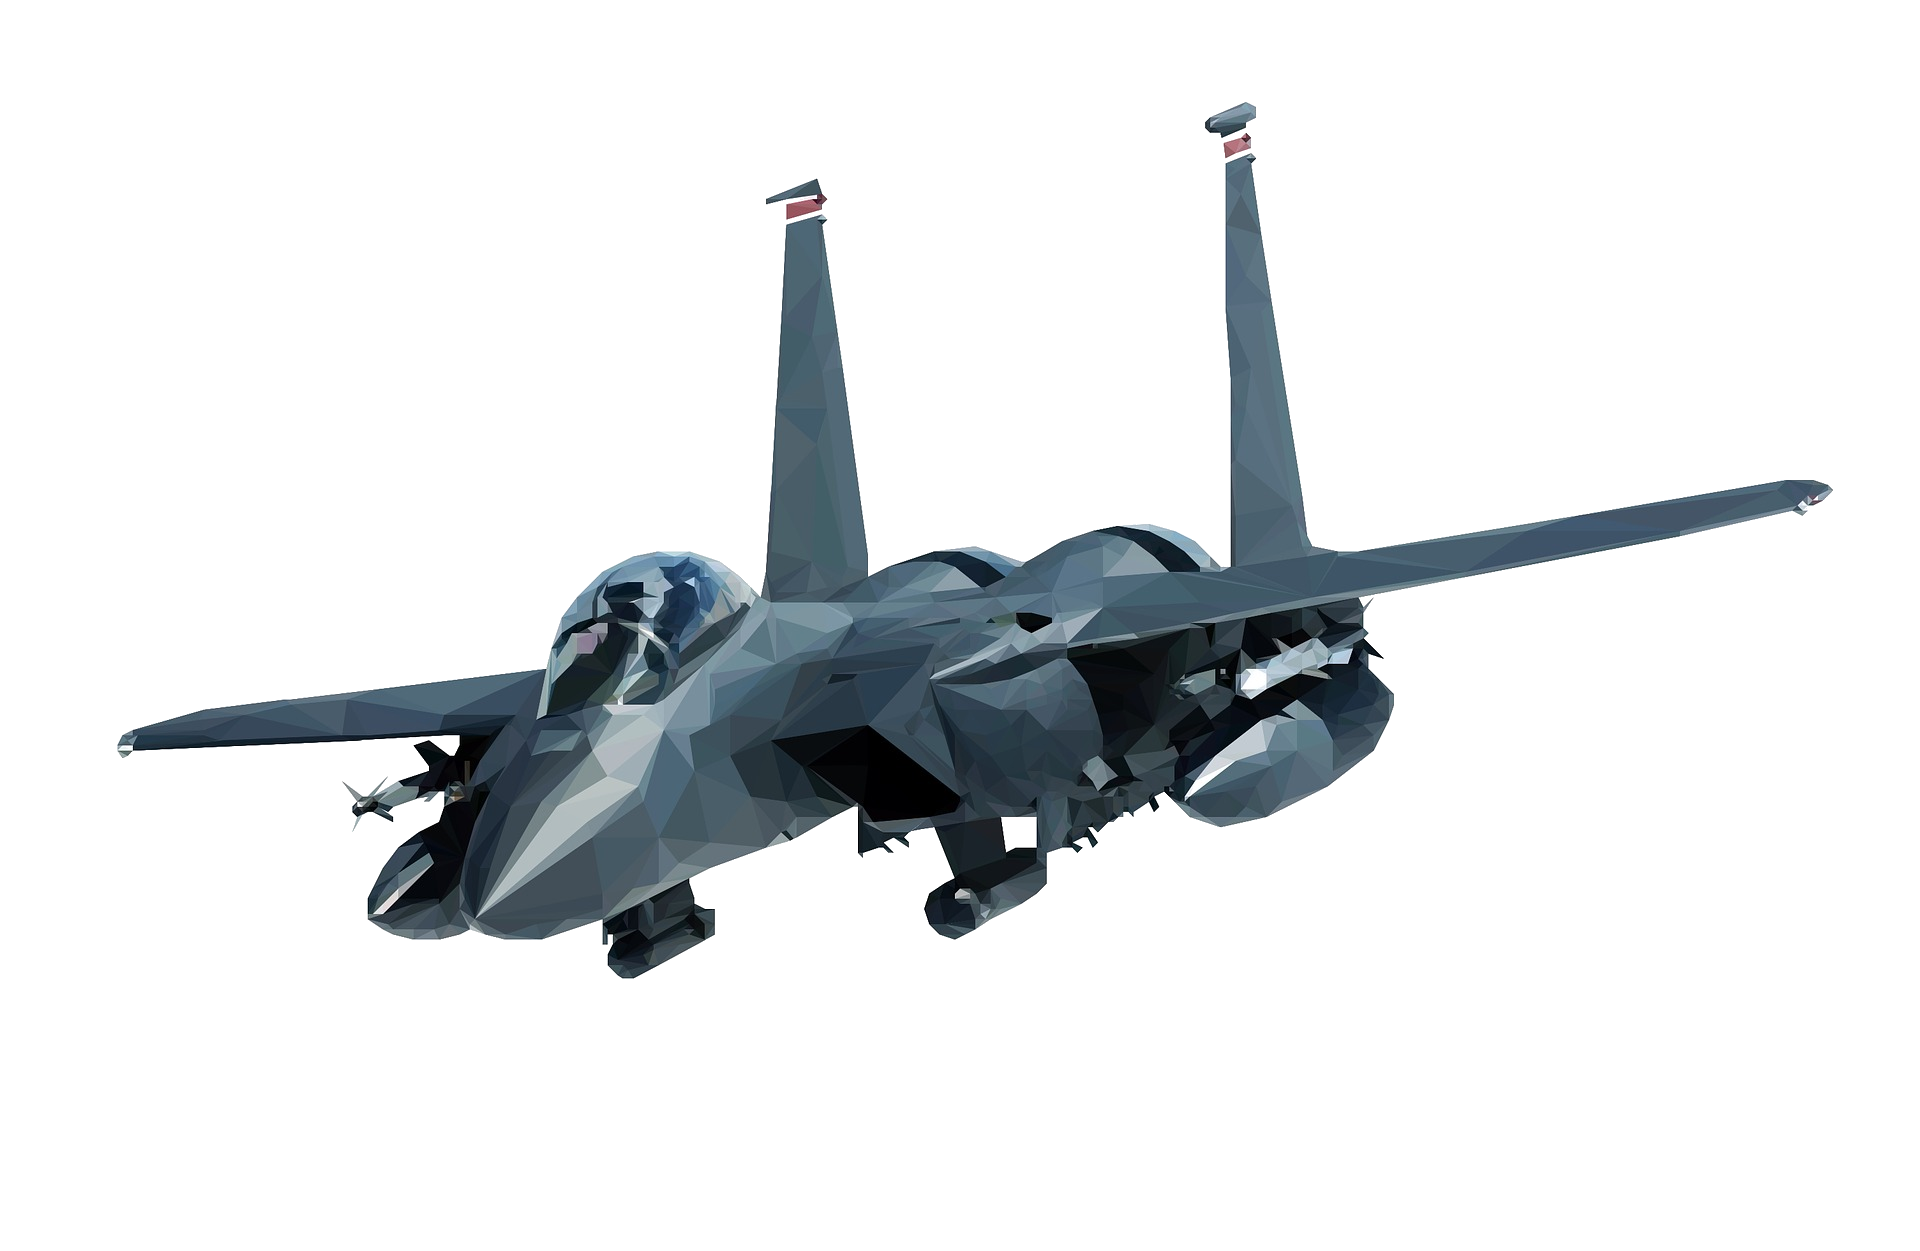 Air force plane png. Military jet image purepng